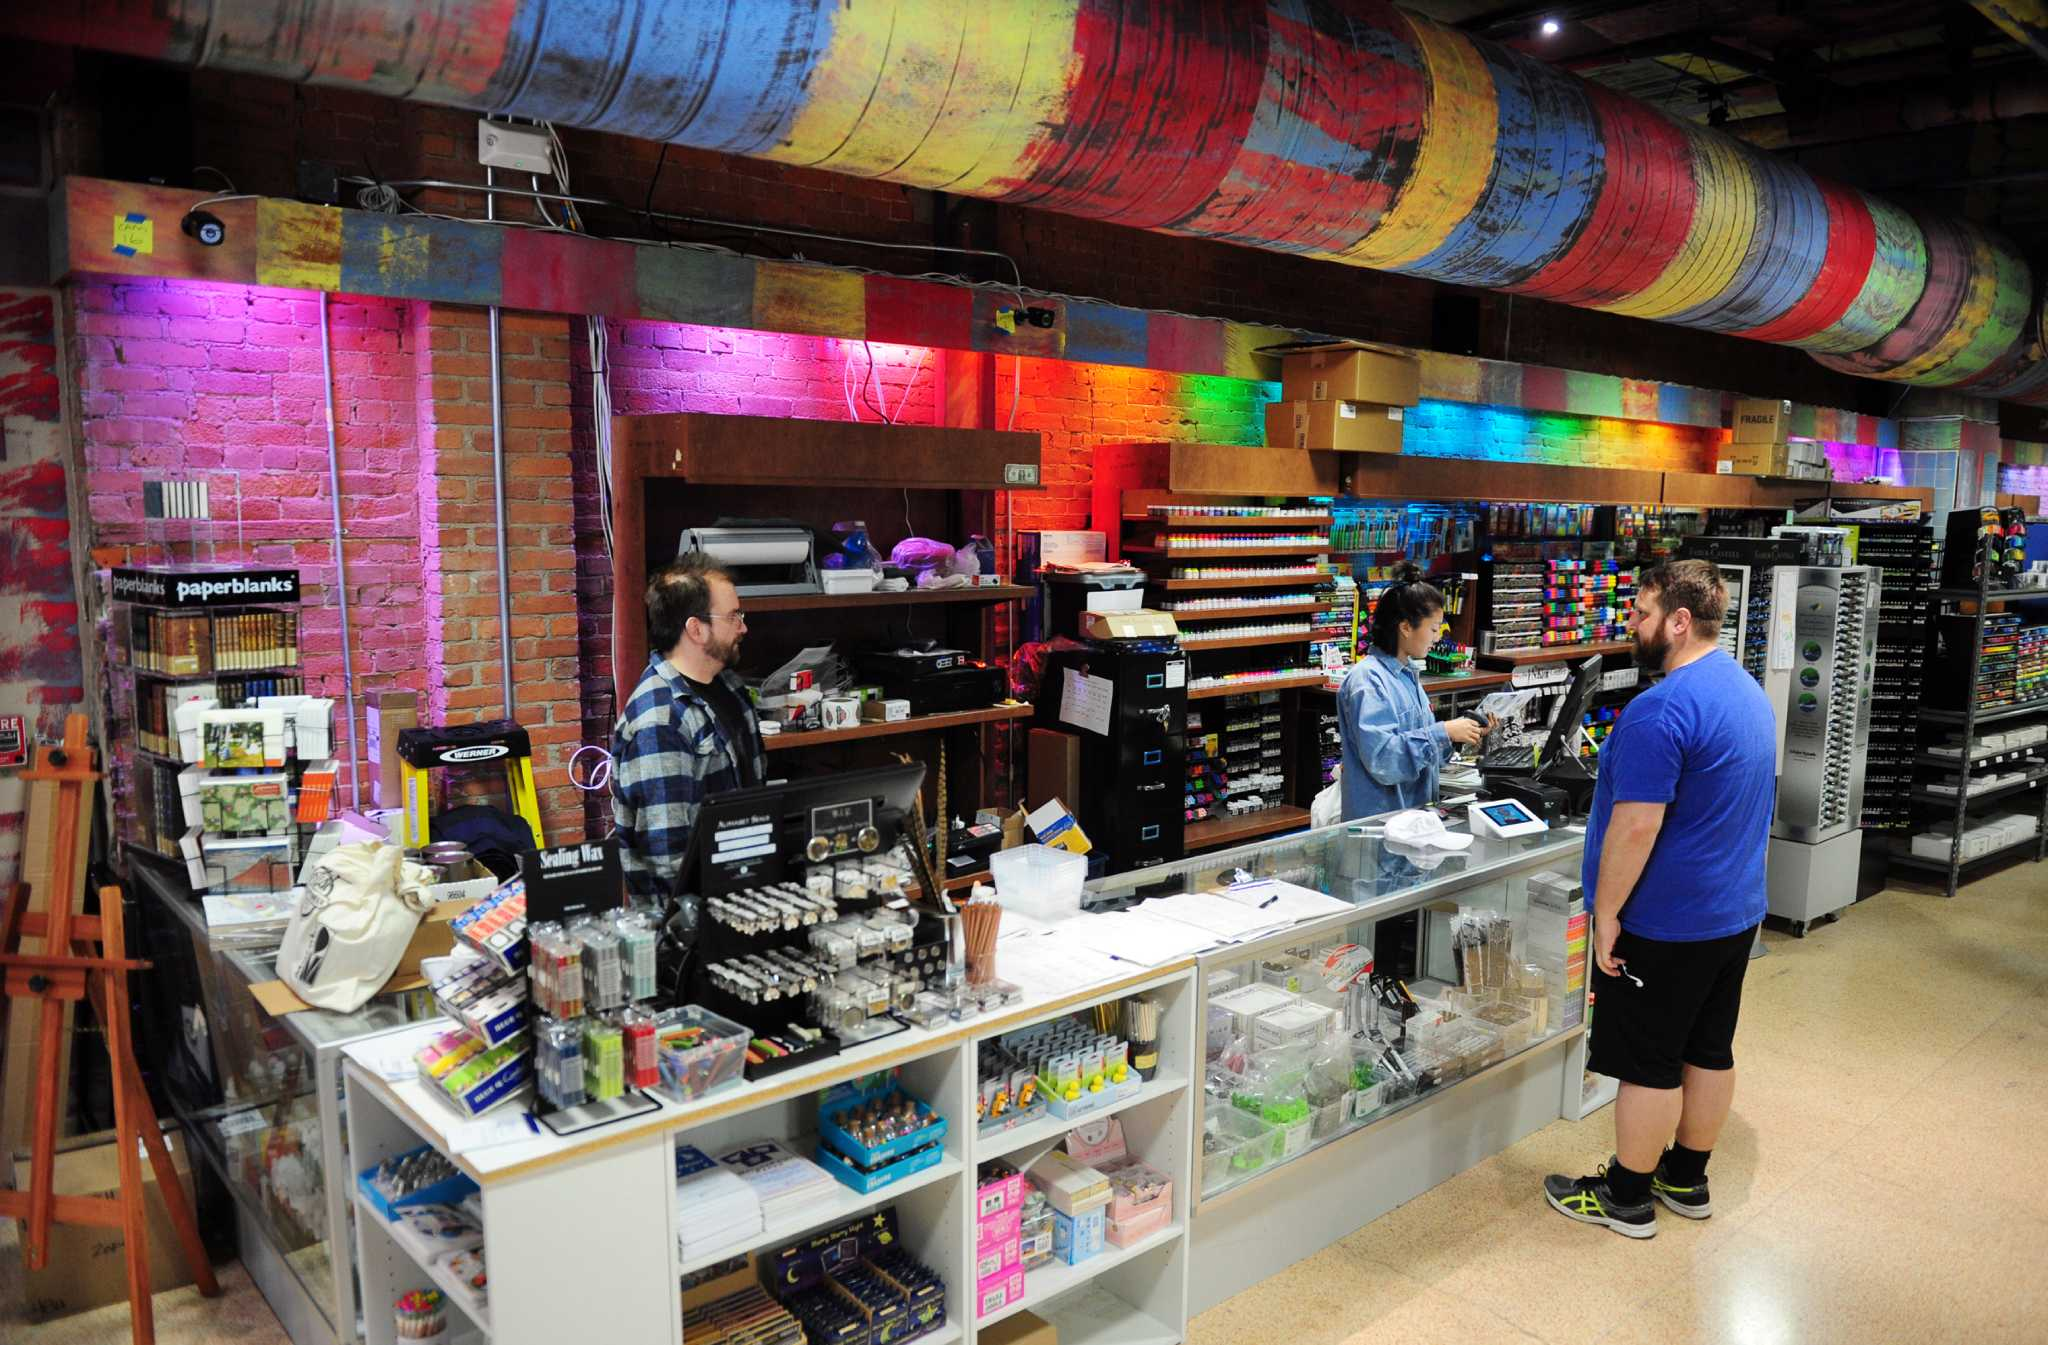 Art Store National Arts Supply Store Opens In Downtown Bridgeport